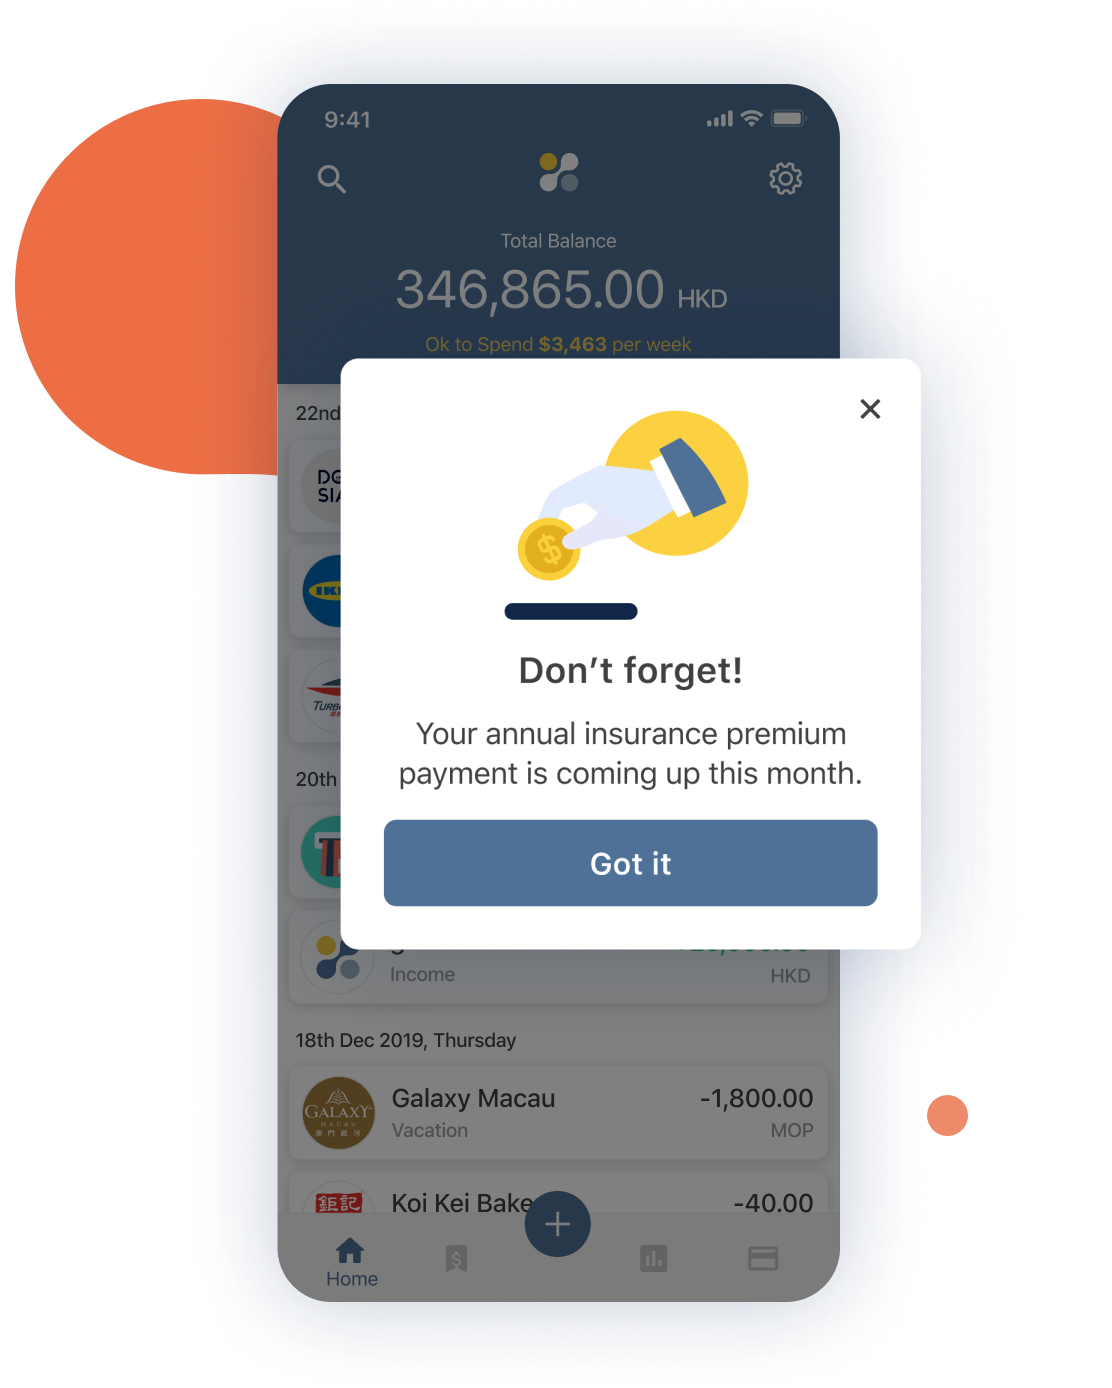 Get notified of upcoming expenses based on your spending history with enriched data from gini